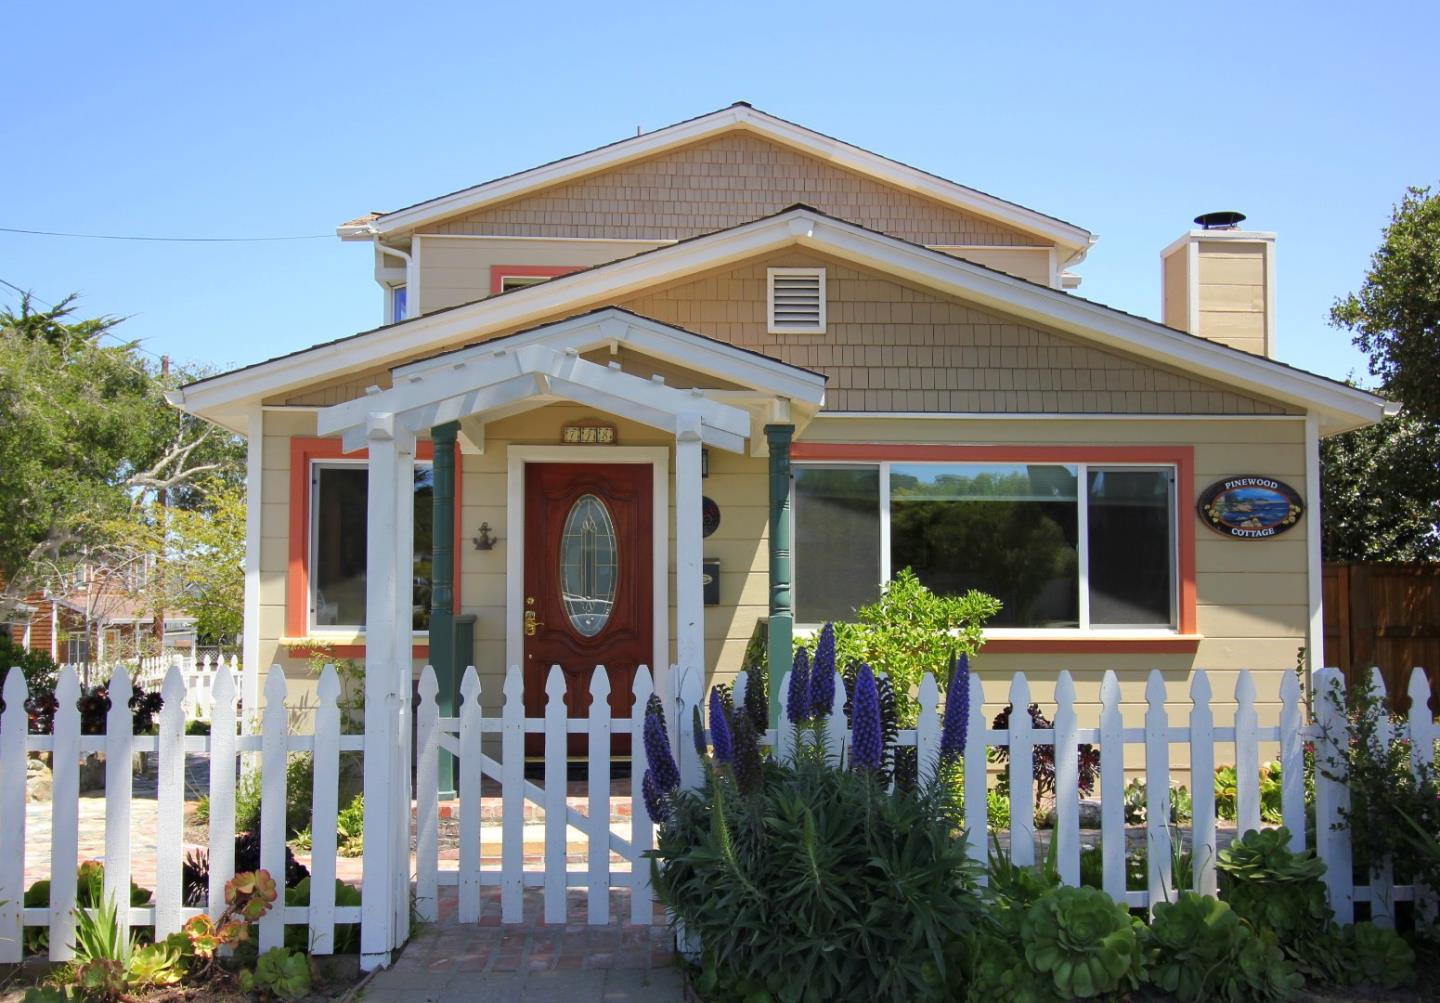 Property for sale at 748 Pine AVE, Pacific Grove,  CA 93950